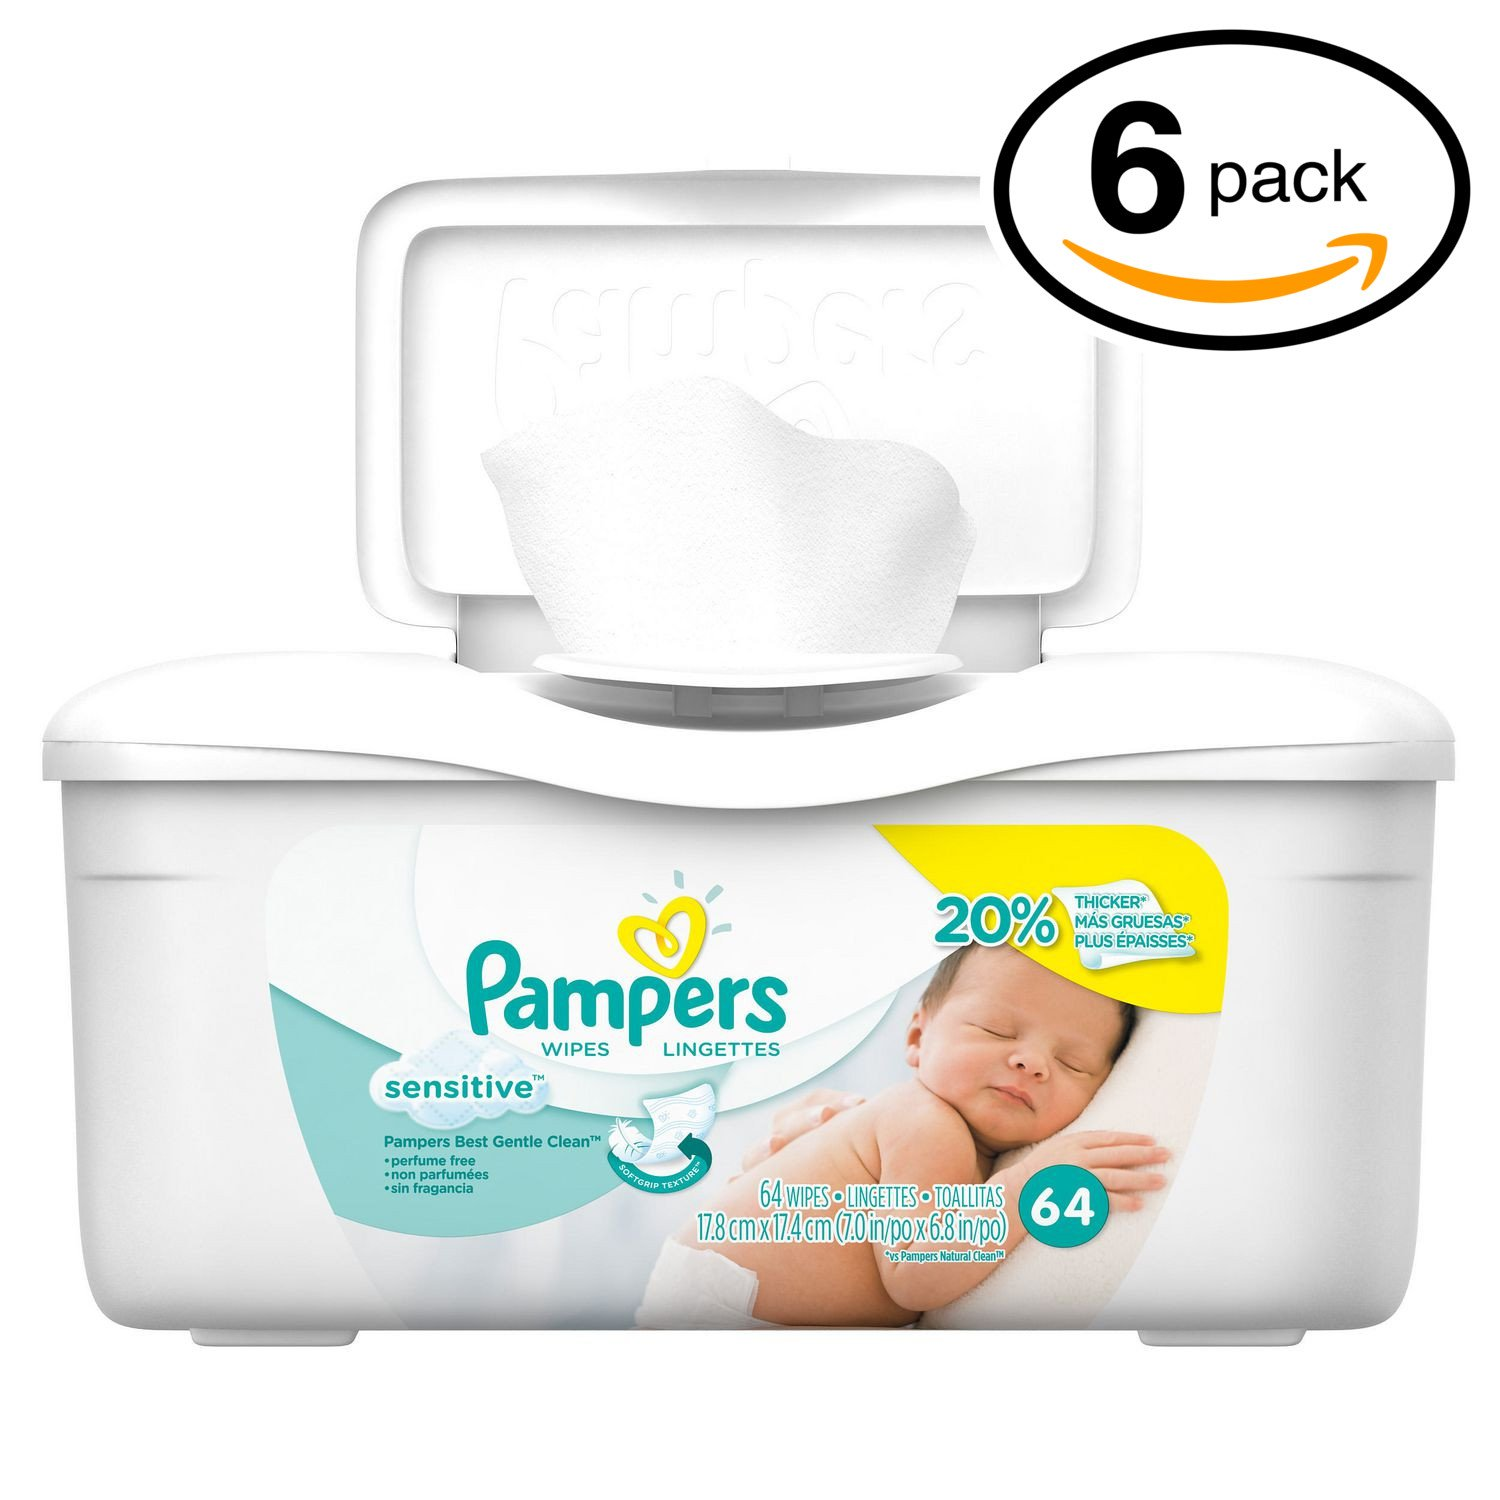 Pampers Baby Wipes Tub, Sensitive - 64 Wipes/Tub (6-Pack/384 Count, Pampers Sensitive)